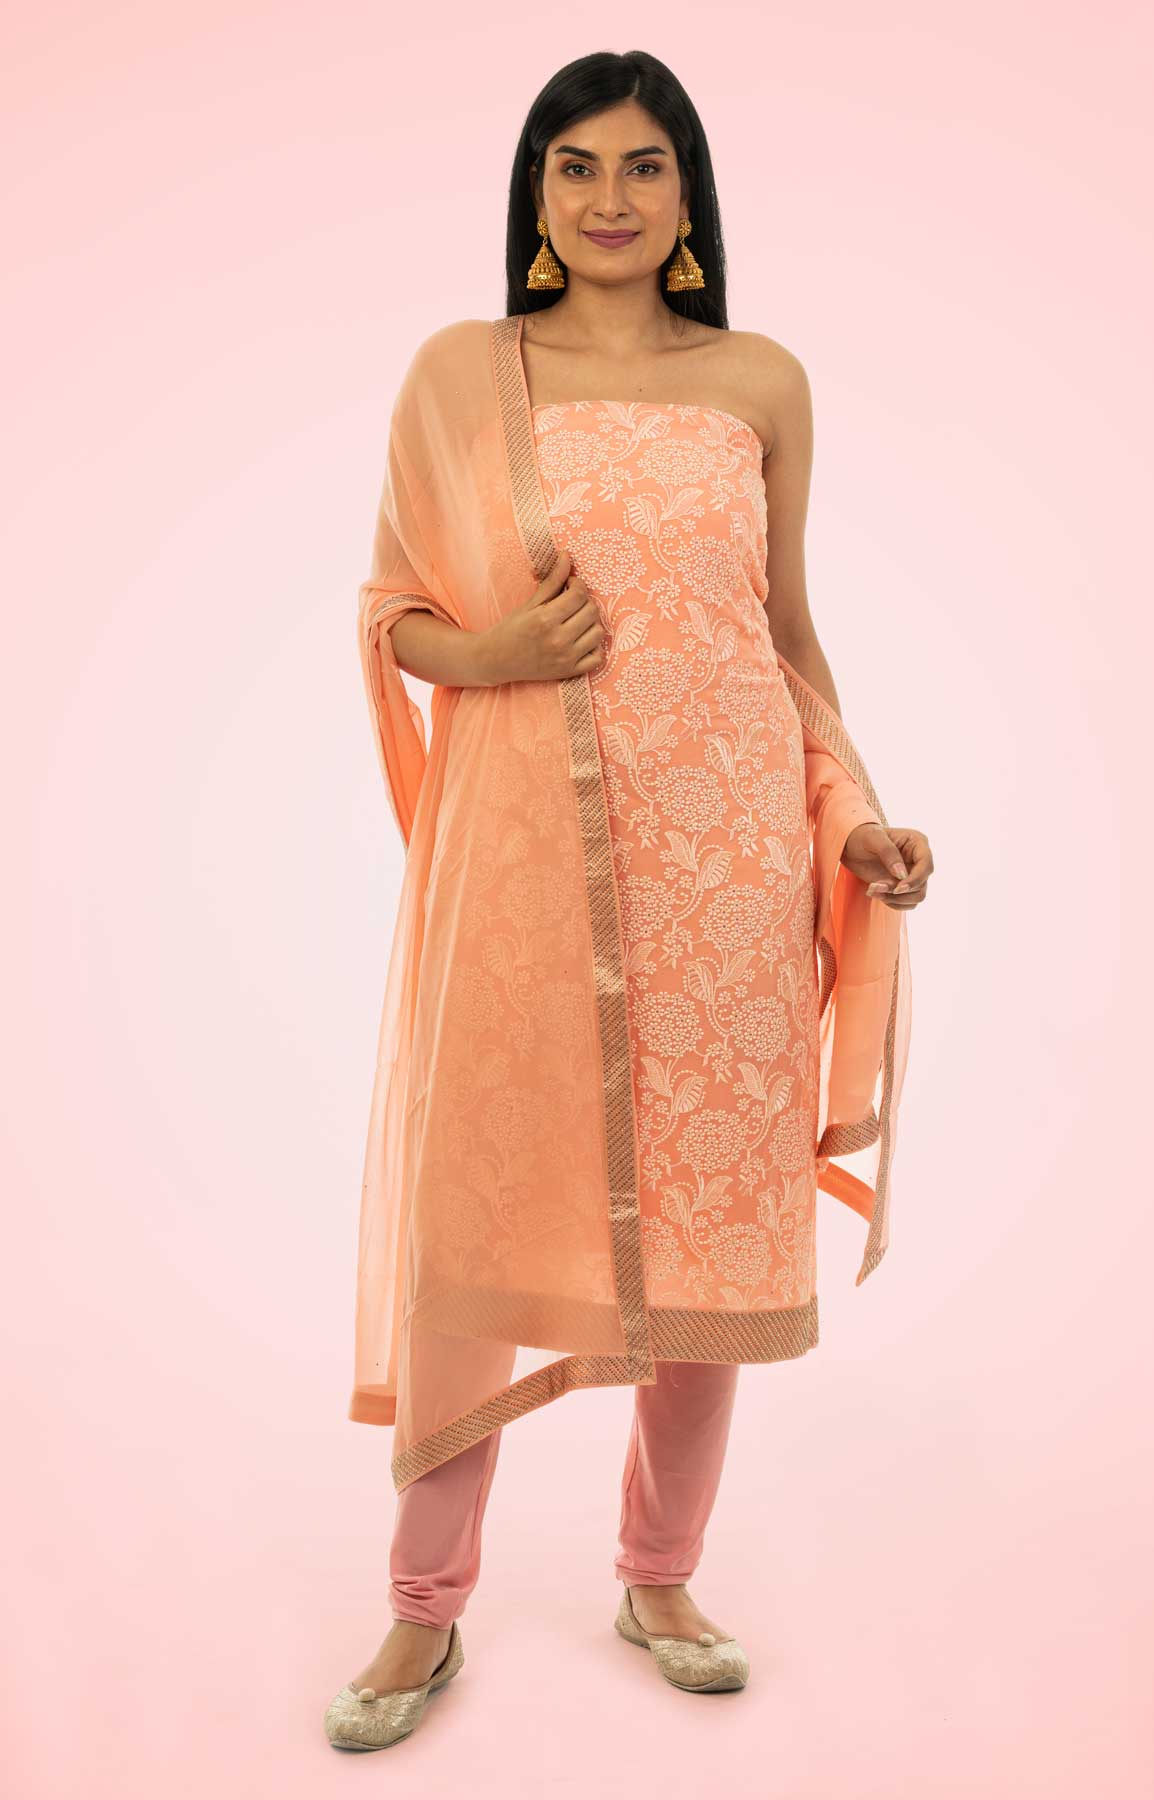 Coral Pink Resham Work Georgette Unstitched Suit Fabric With Crepe Bottom – Viraaya By Ushnakmals